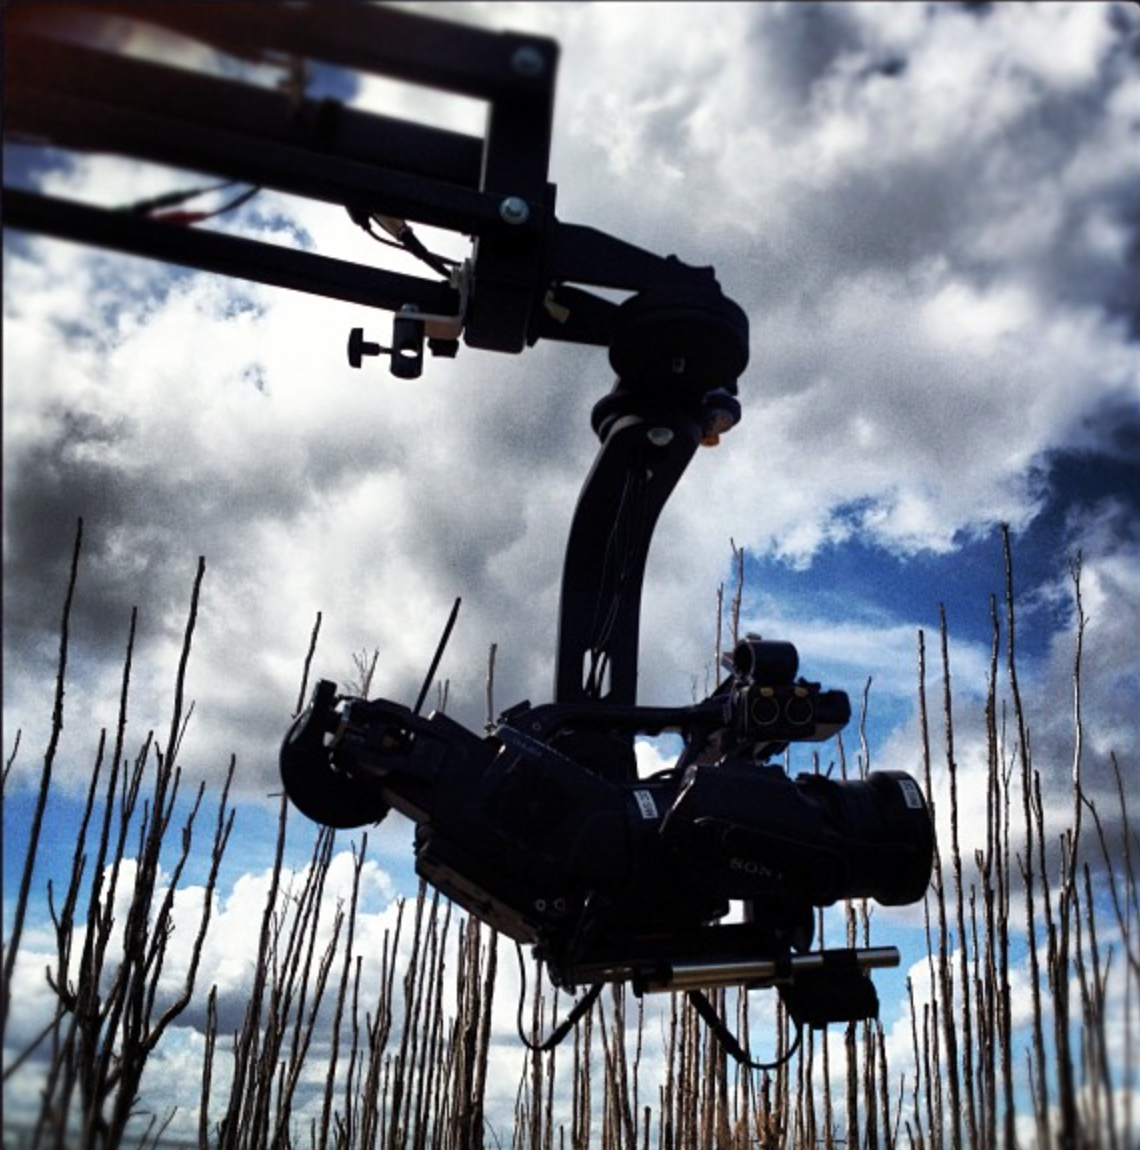 EX3 on EZFX Jib in Everglades